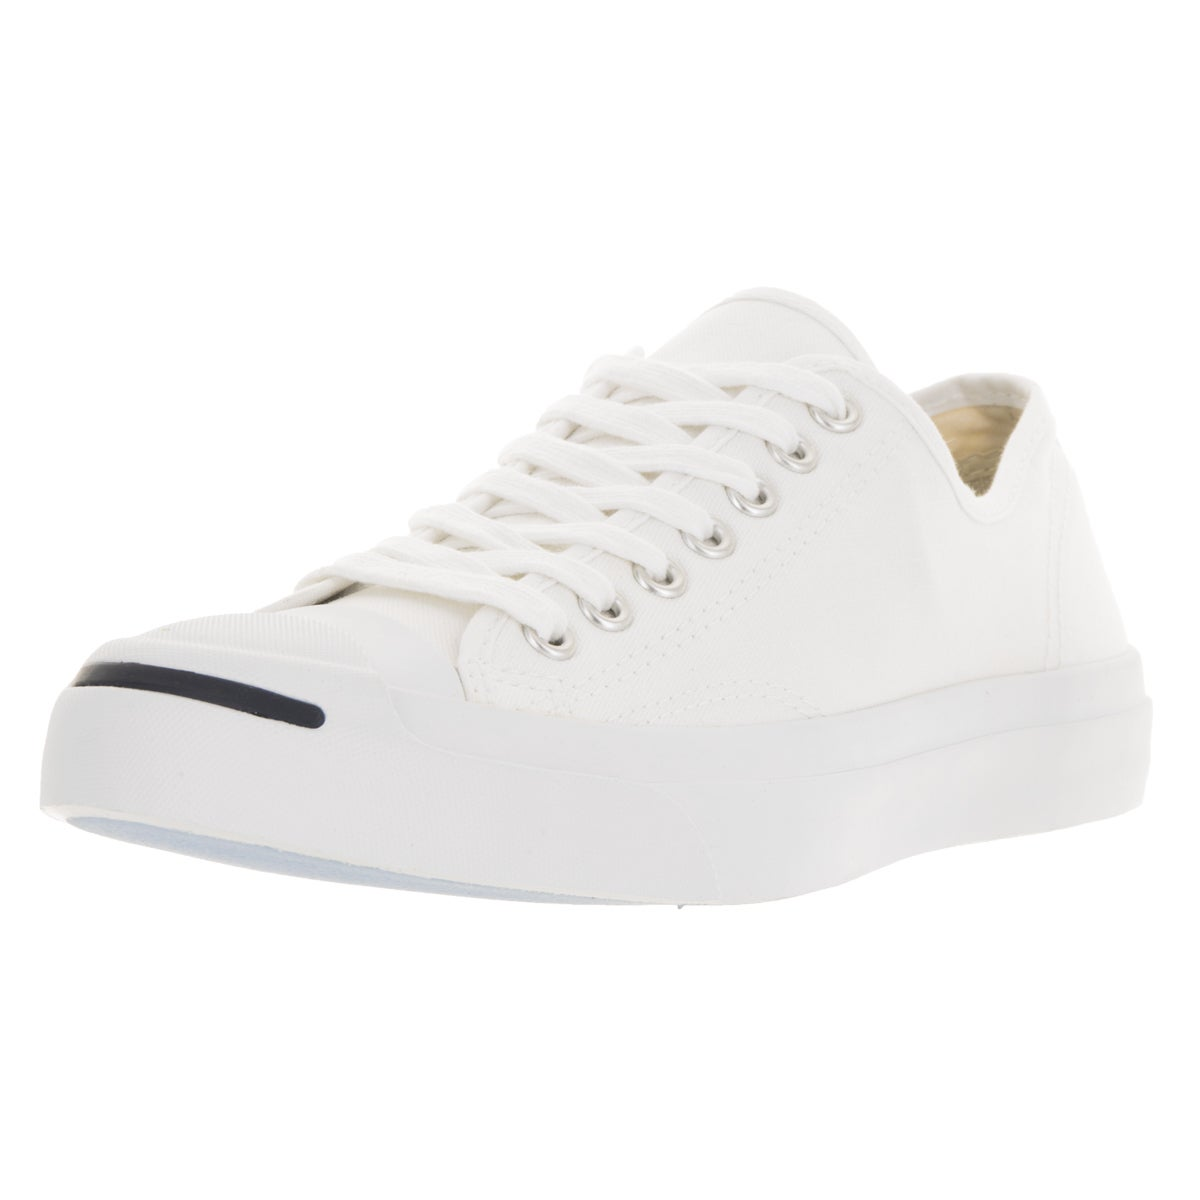 1a522a1fbbfd Shop Converse Jack Purcell White Casual Shoe - Free Shipping Today ...